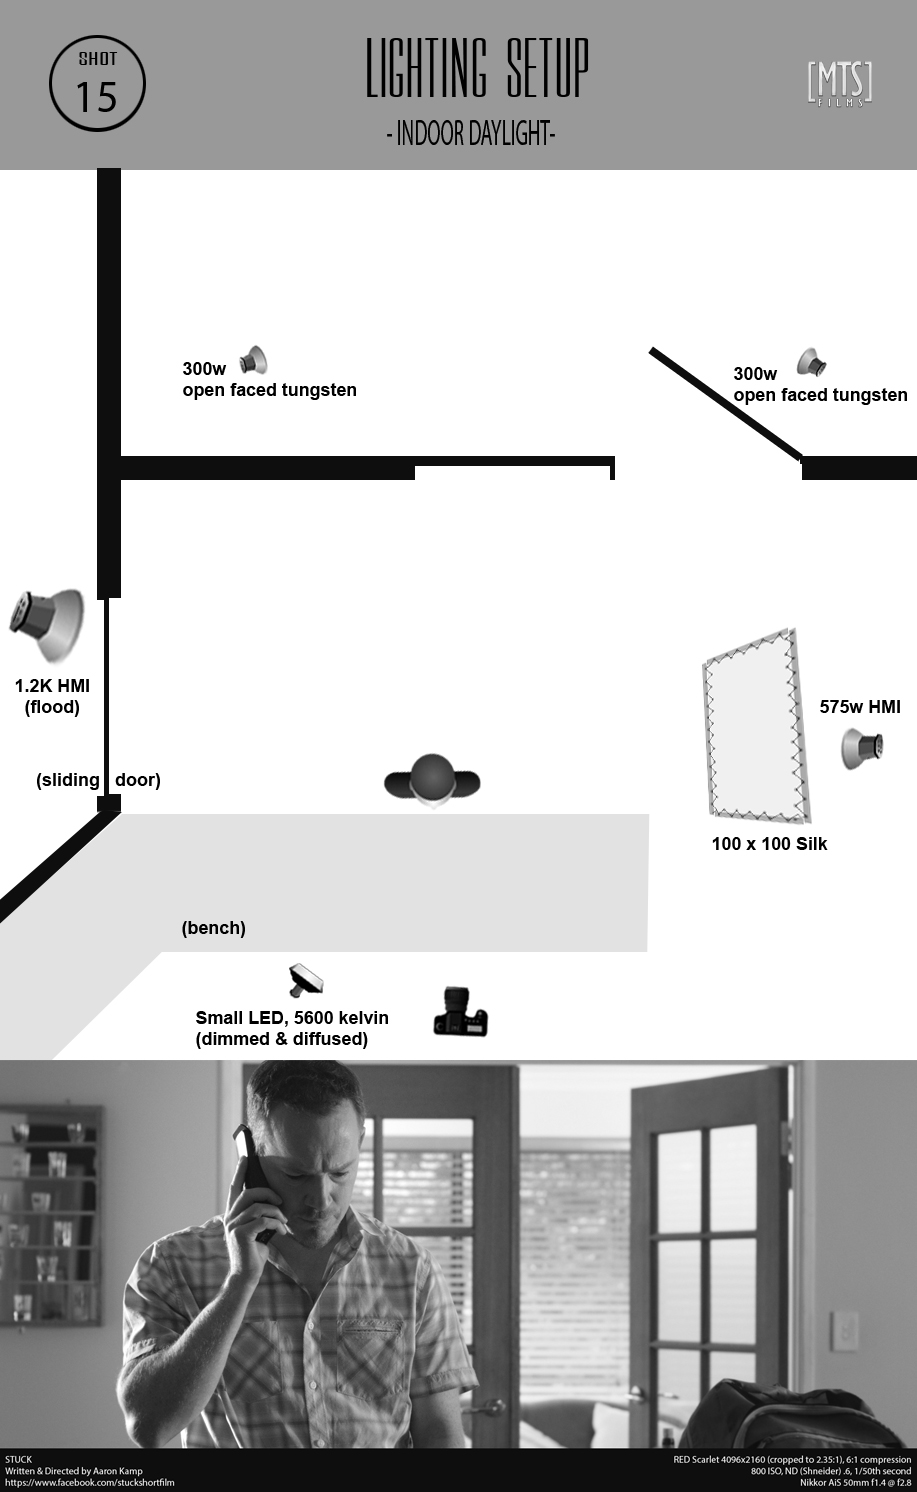 hight resolution of for more lighting diagrams be sure to visit the lighting section at the top of this page thanks for visiting